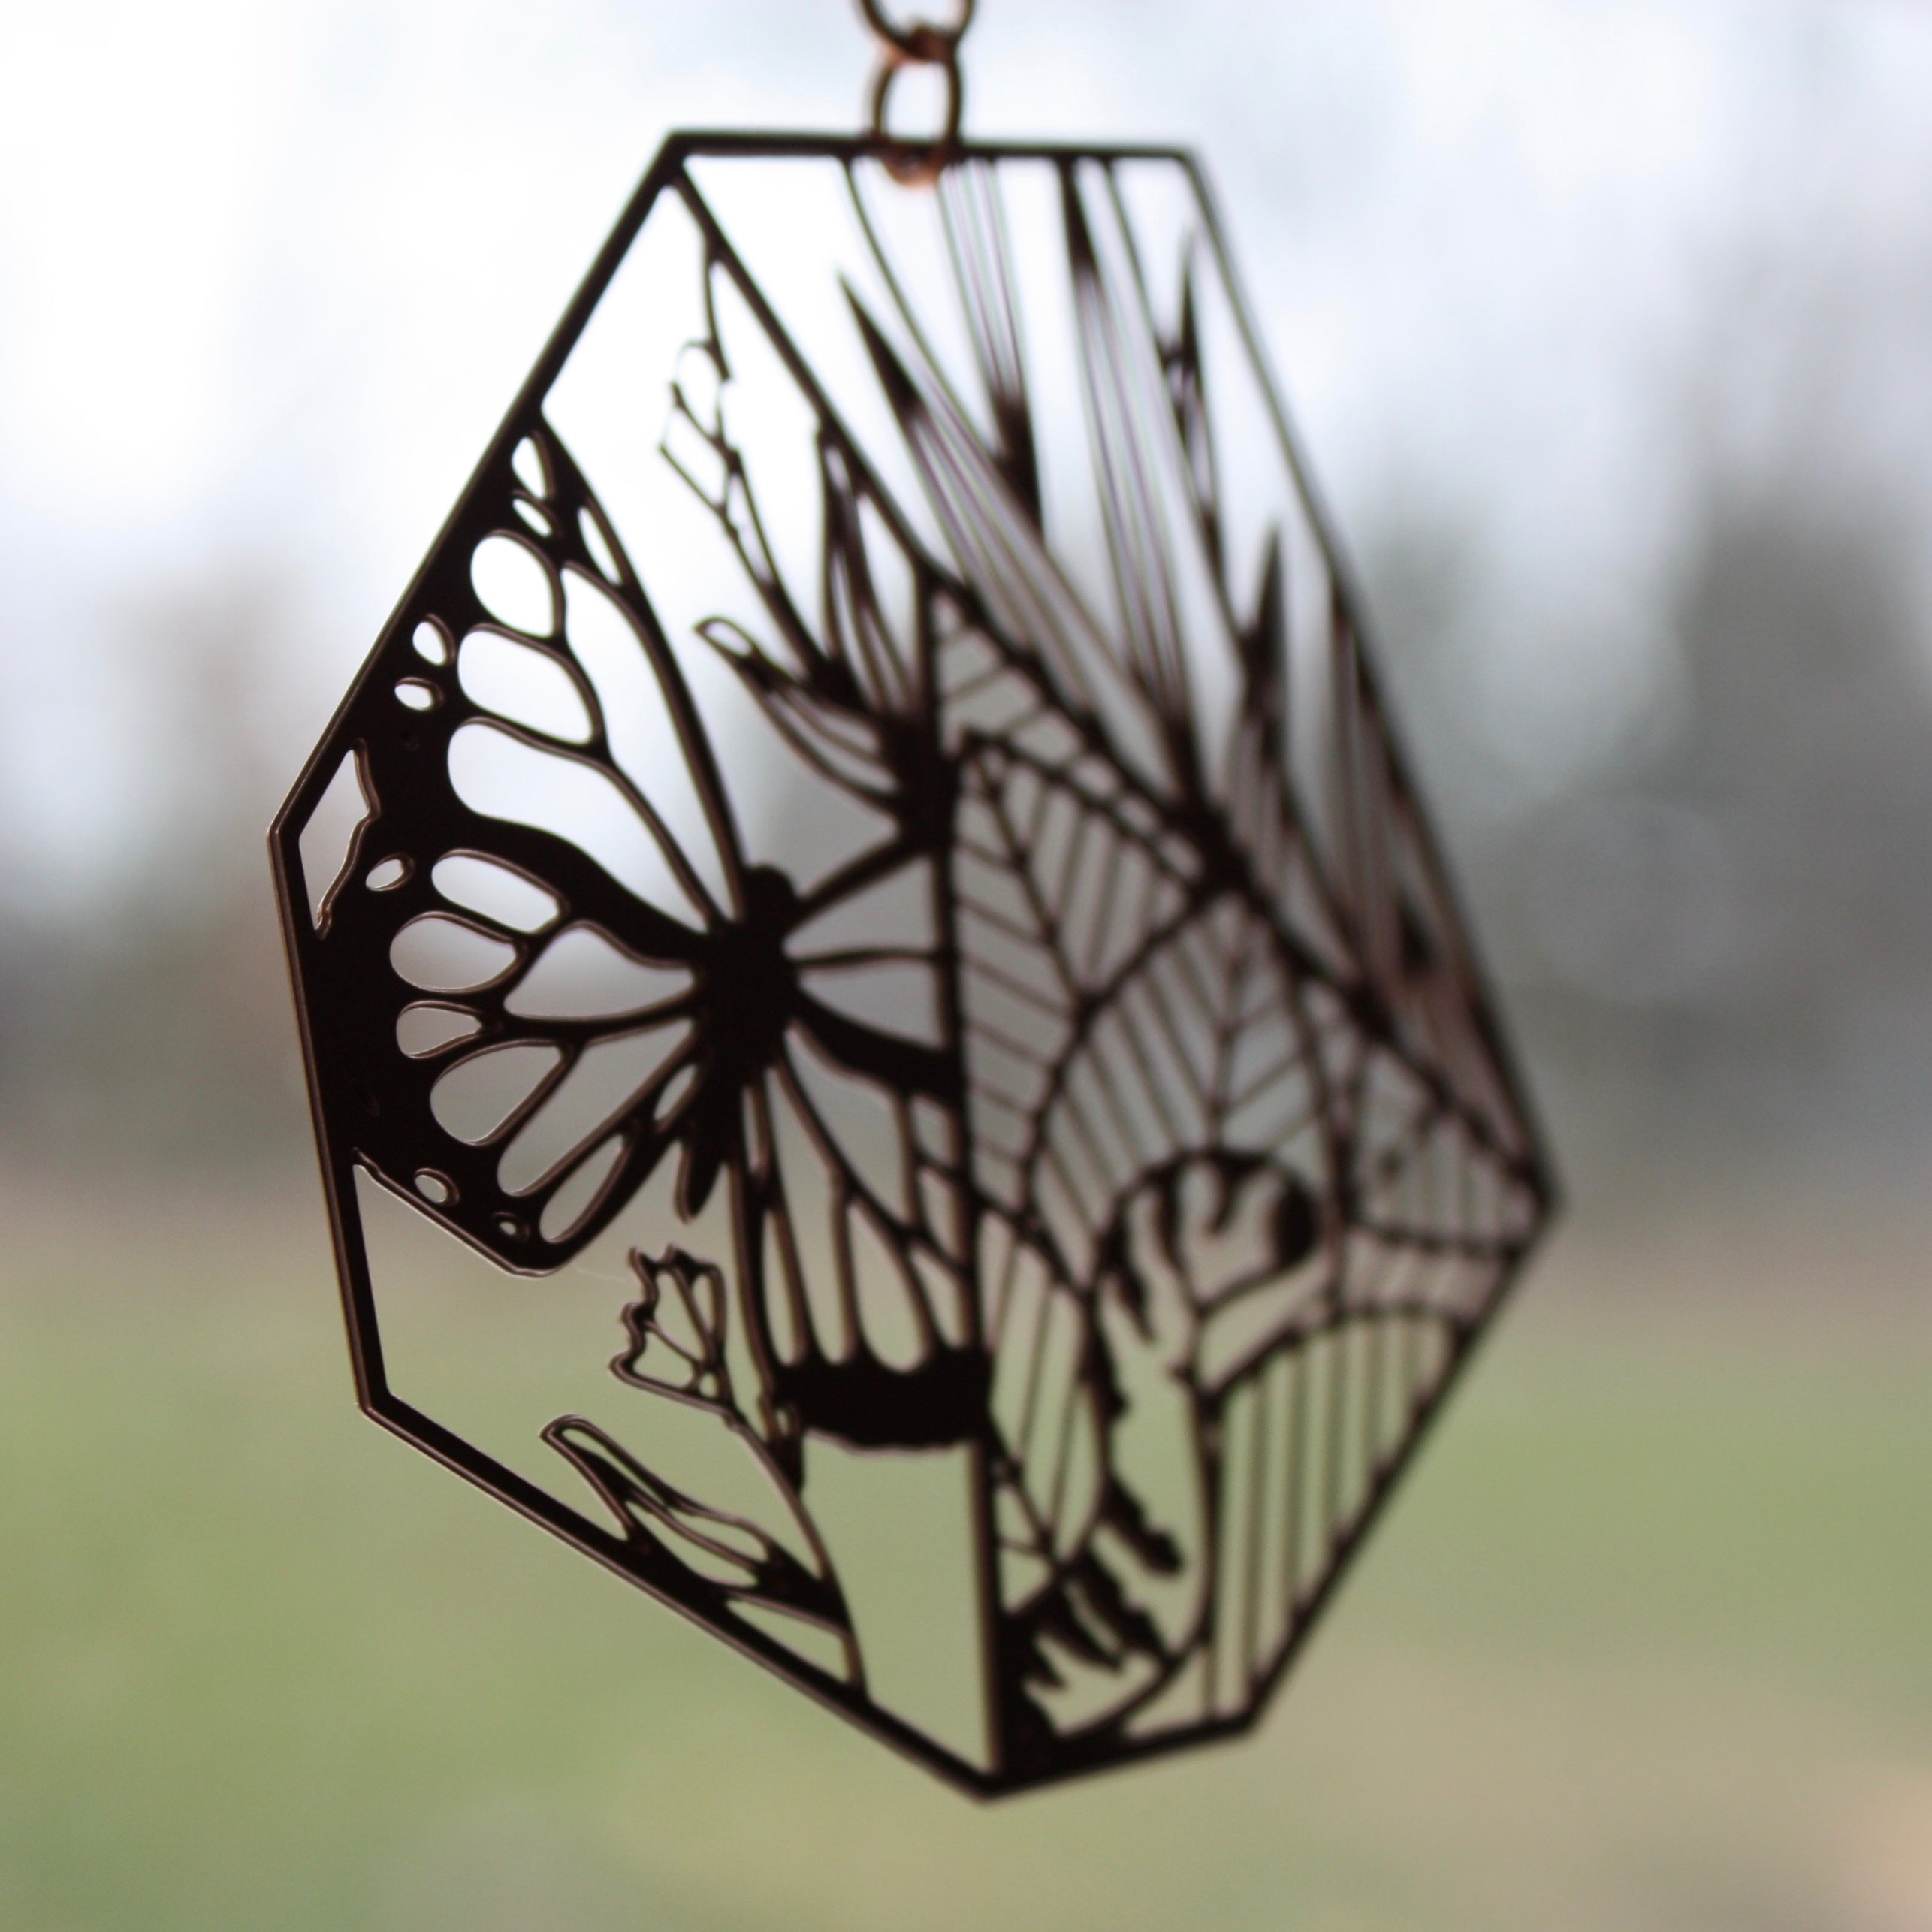 Suncatcher | Butterfly, Flowers & Caterpillar by Audra Azoury